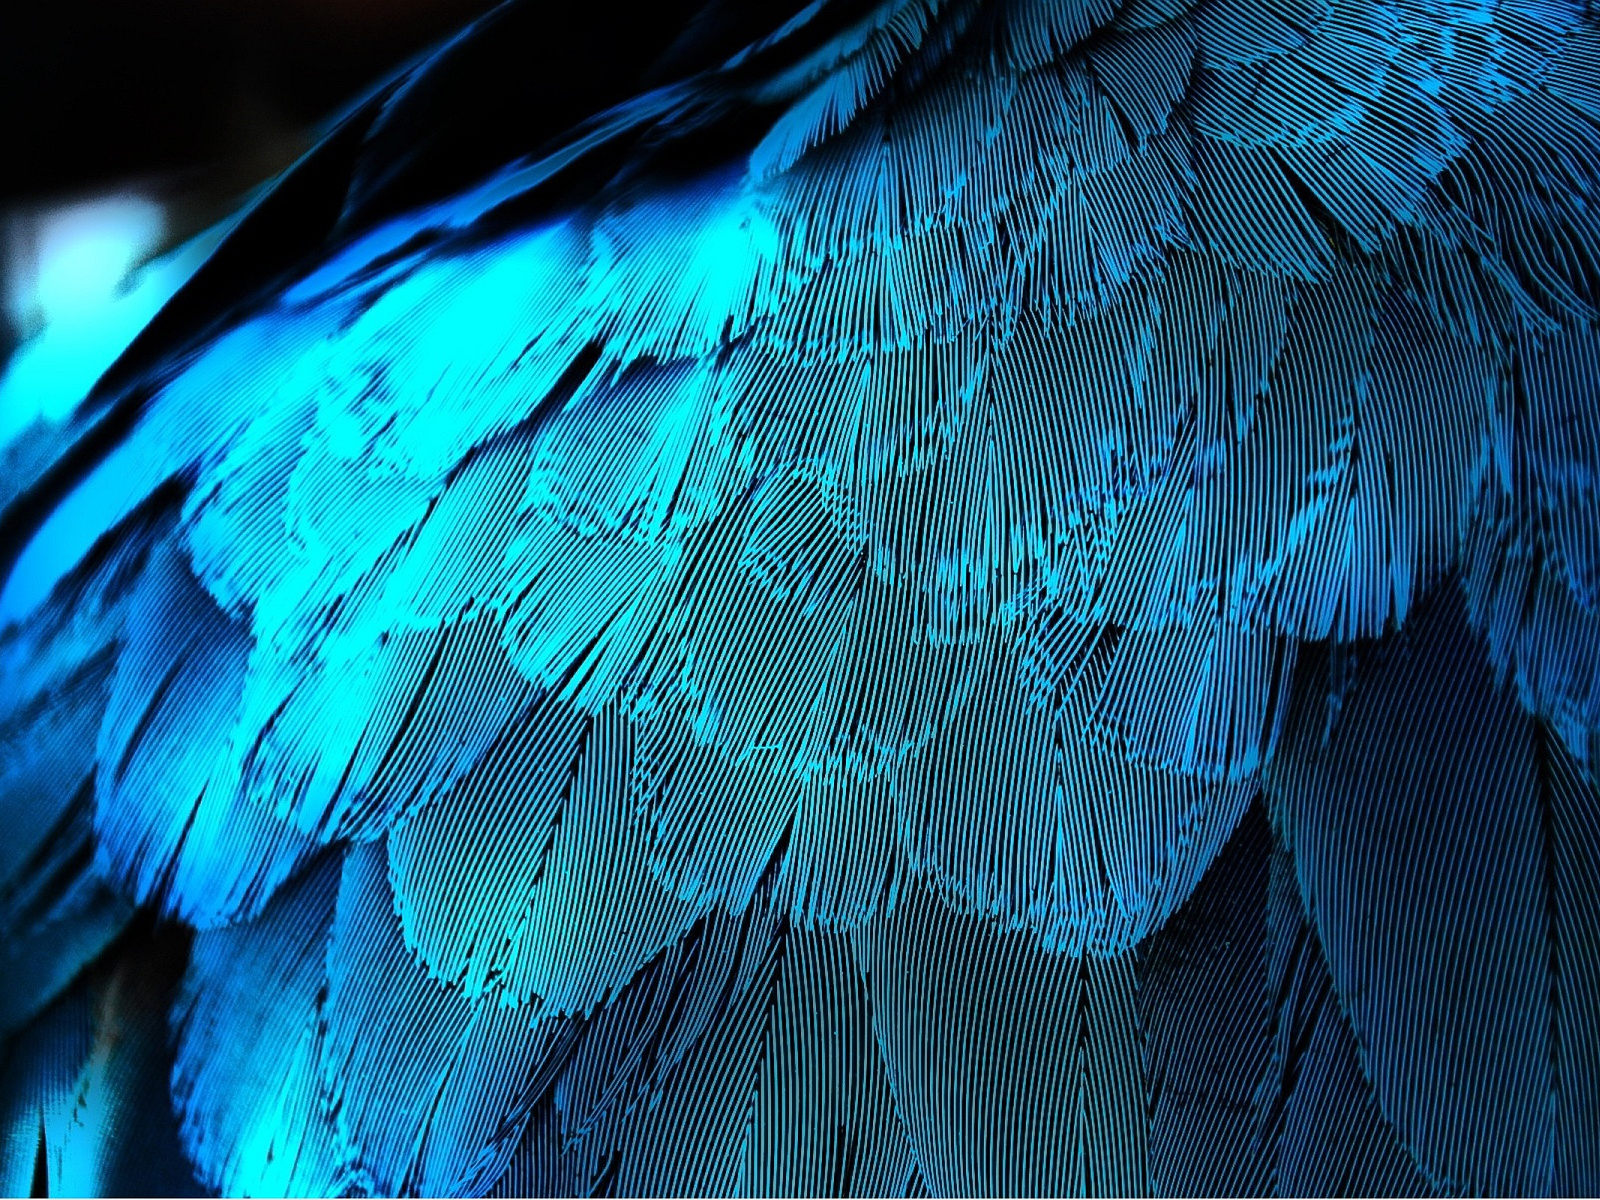 wallpaper feather download - photo #13